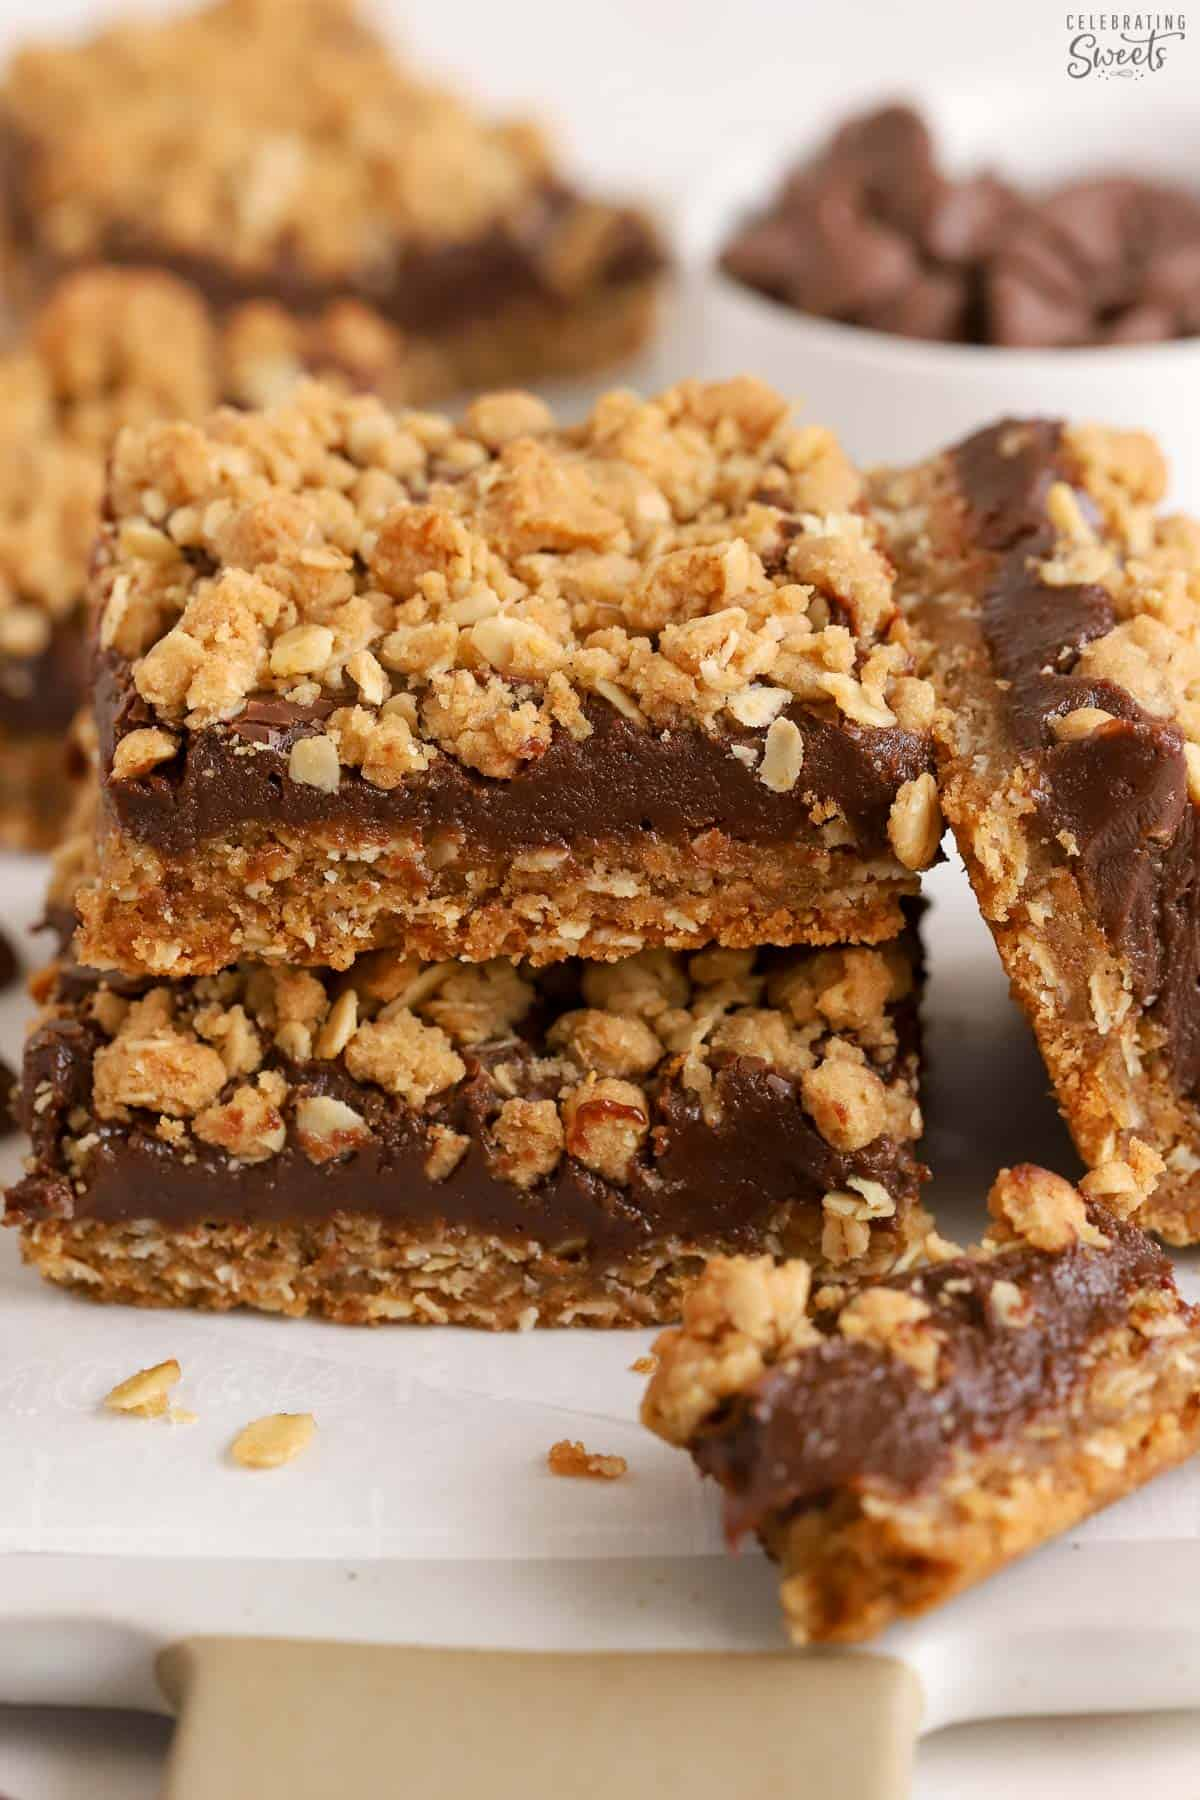 Stack of three Oatmeal Fudge Bars on parchment paper.